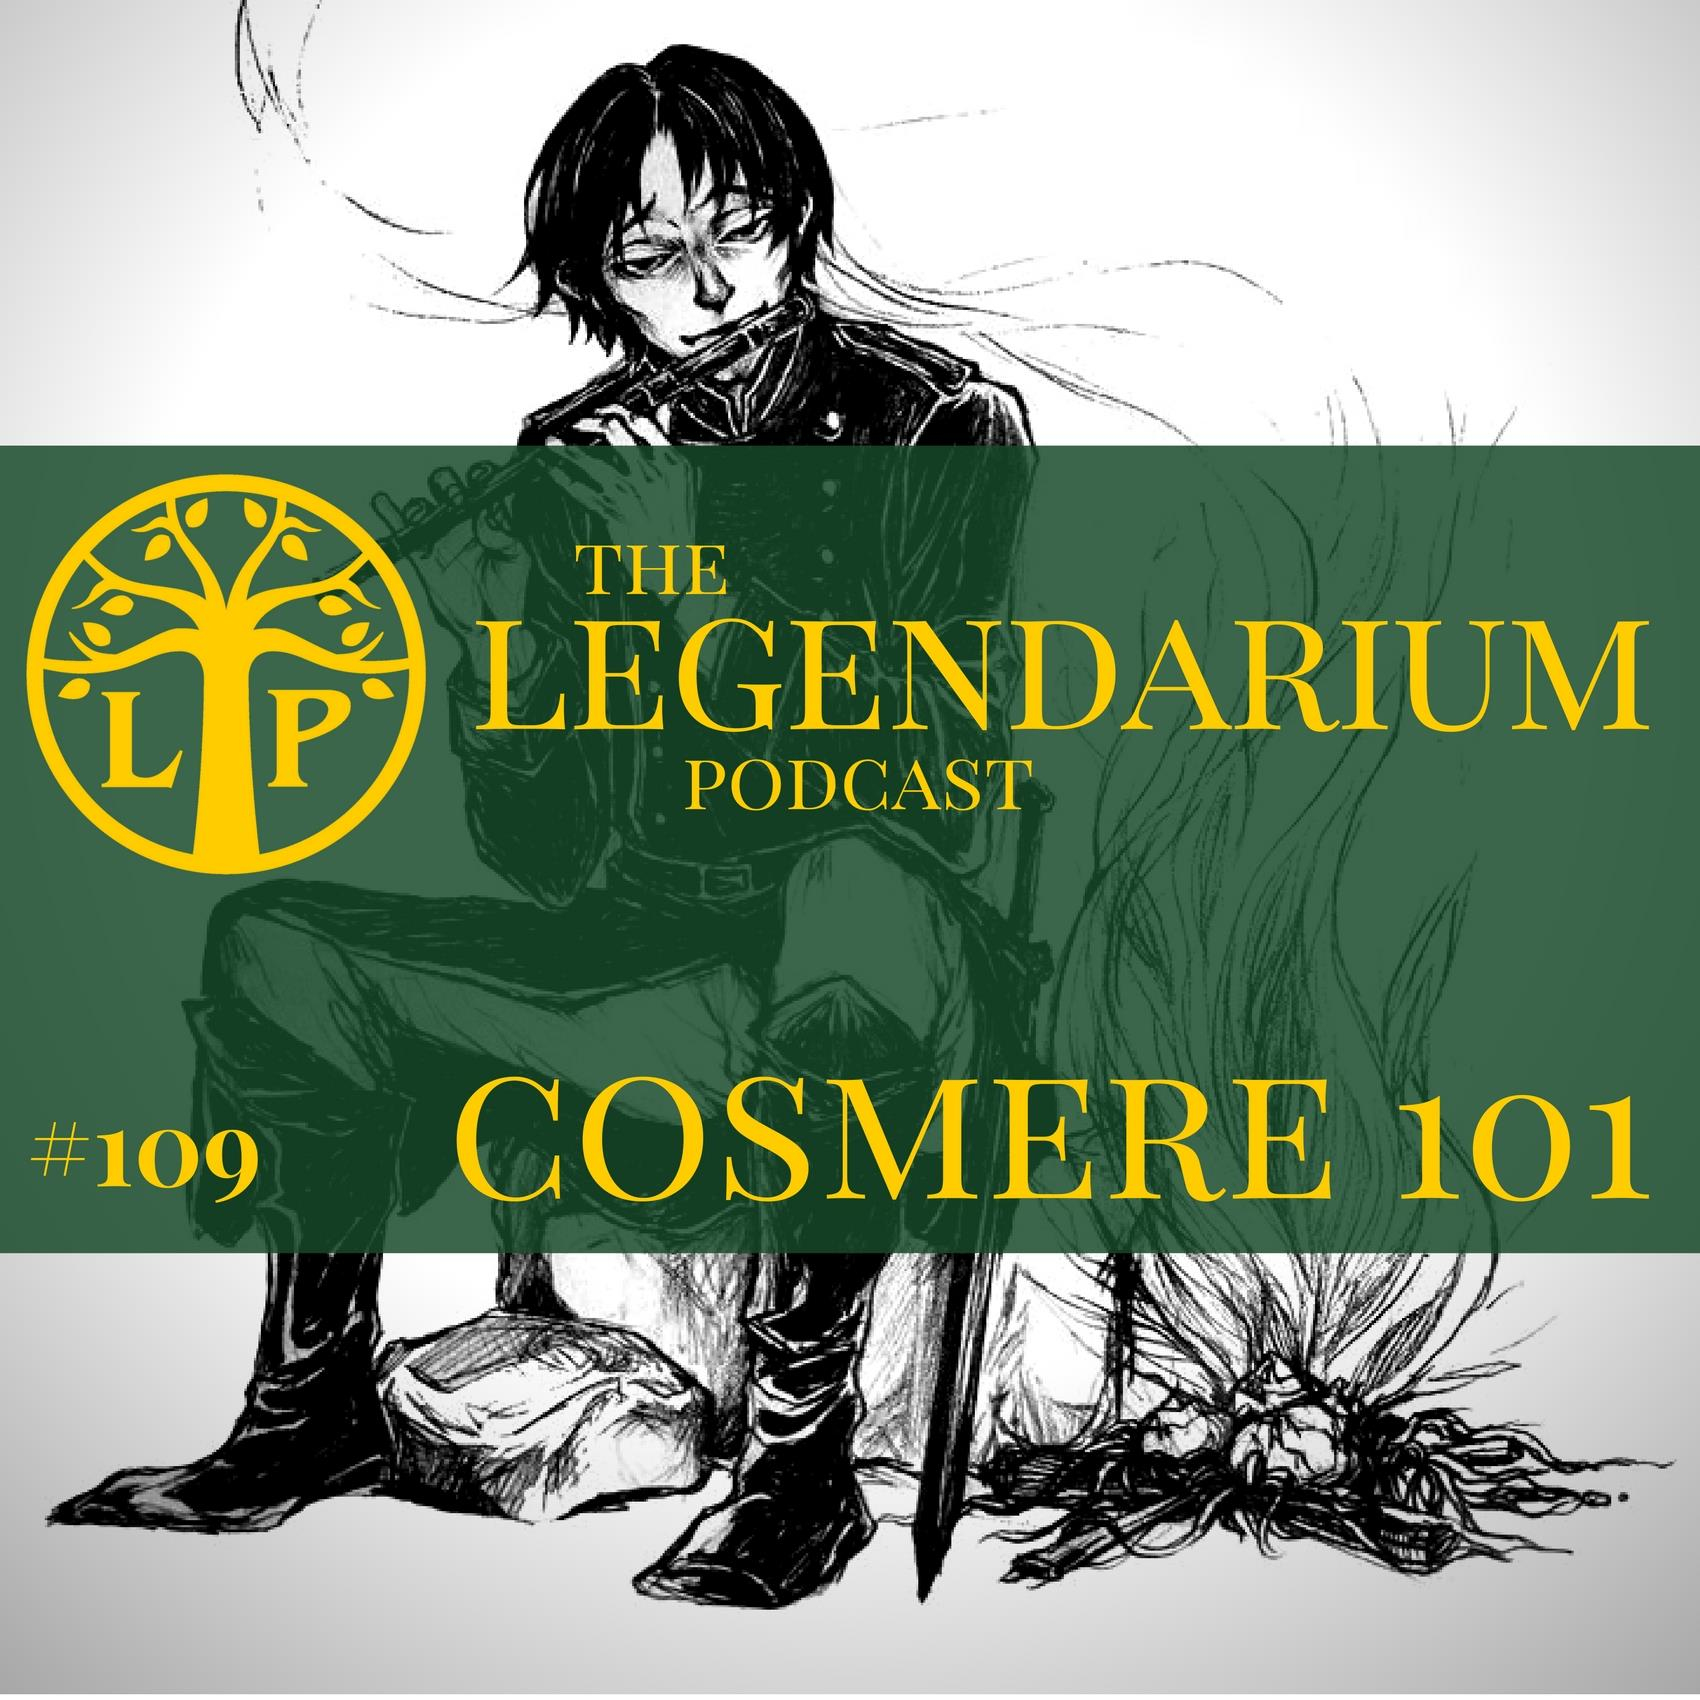 #109. Cosmere 101